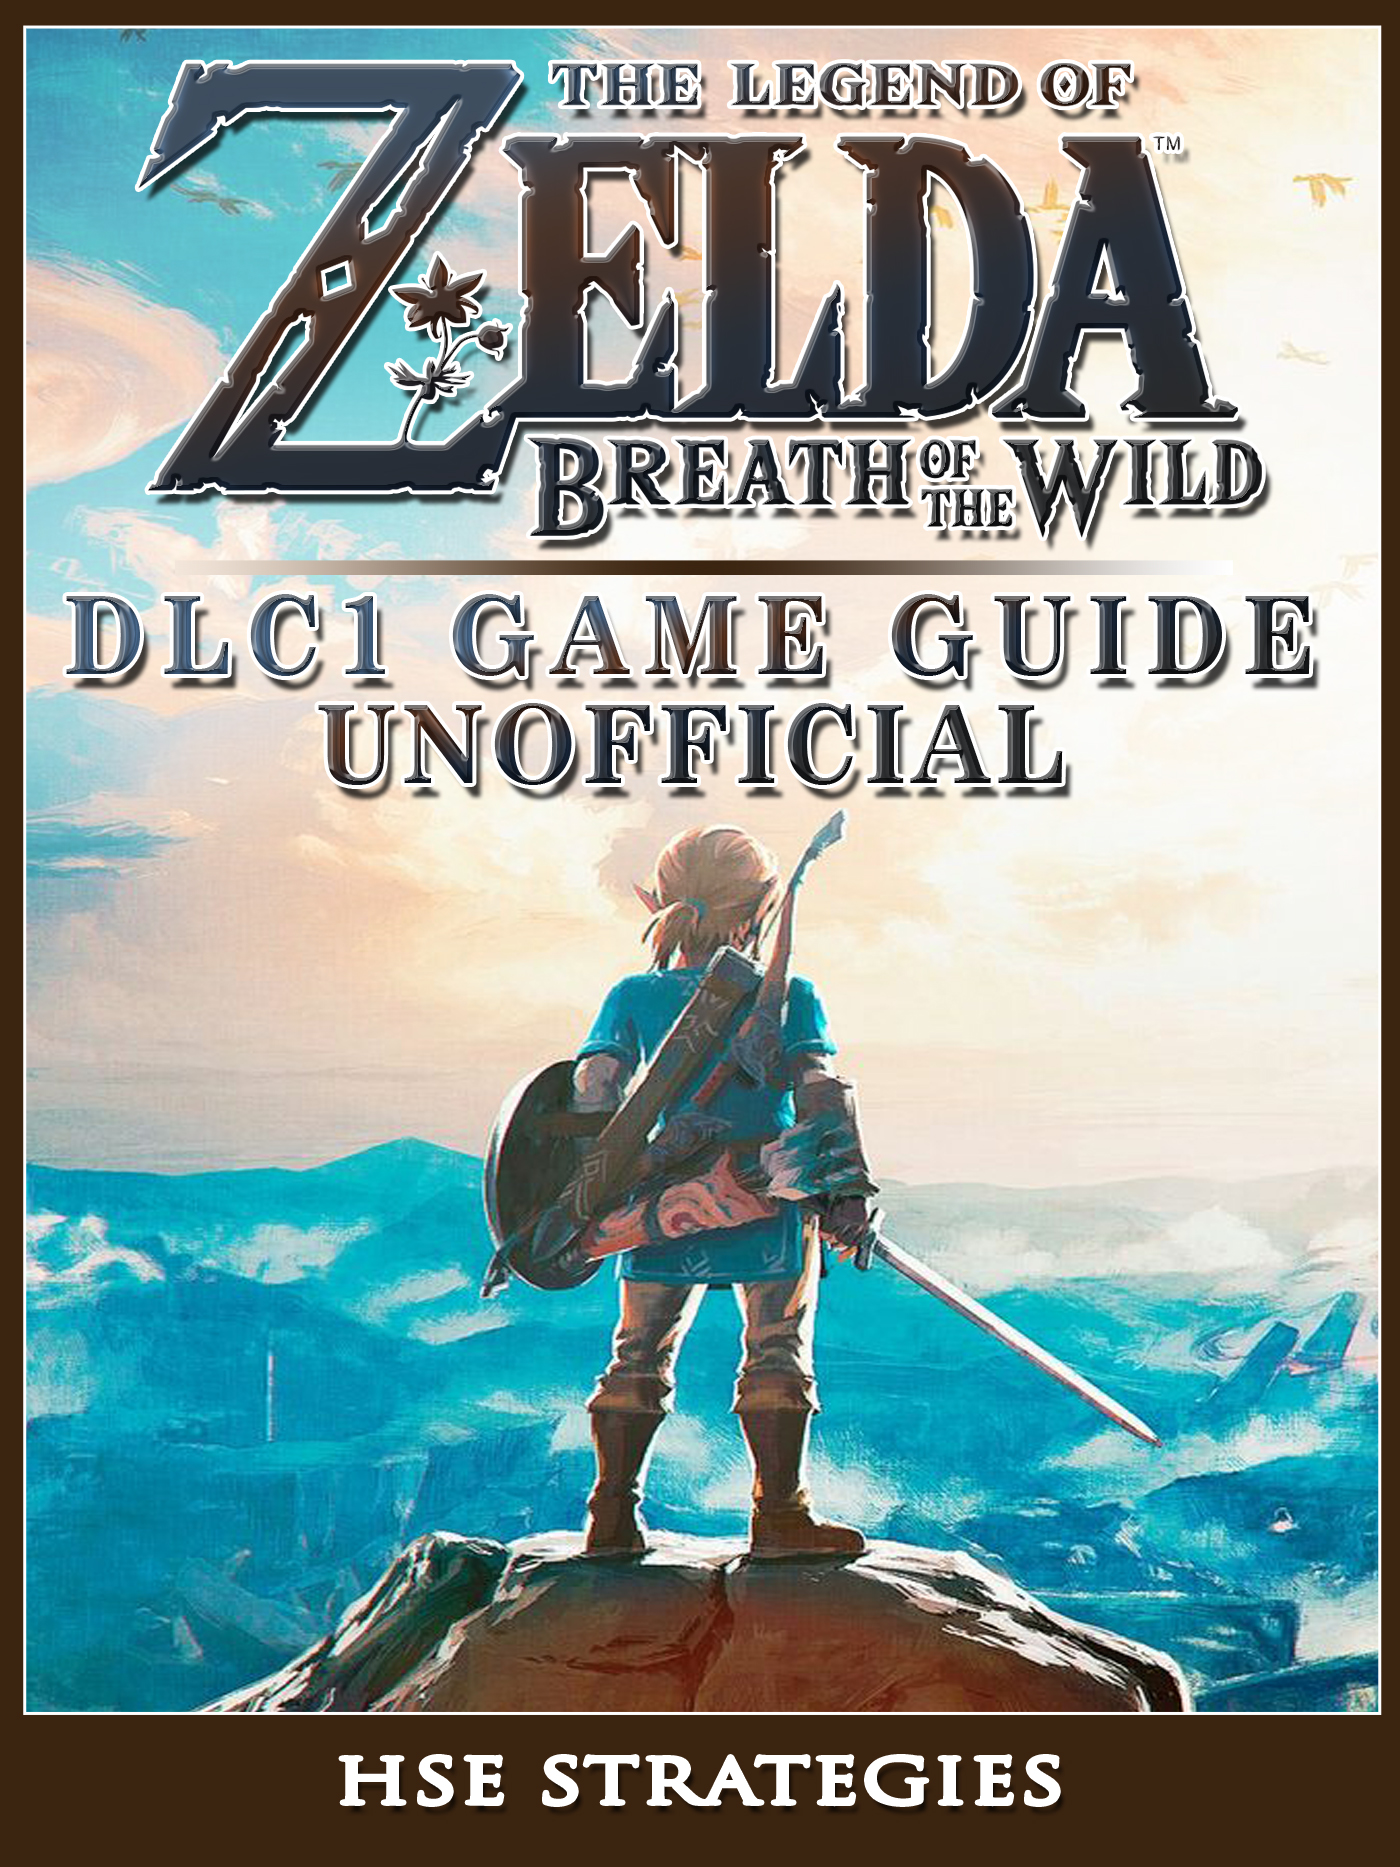 The Legend of Zelda Breath of The Wild DLC 1 Game Guide Unofficial By Hse Strategies